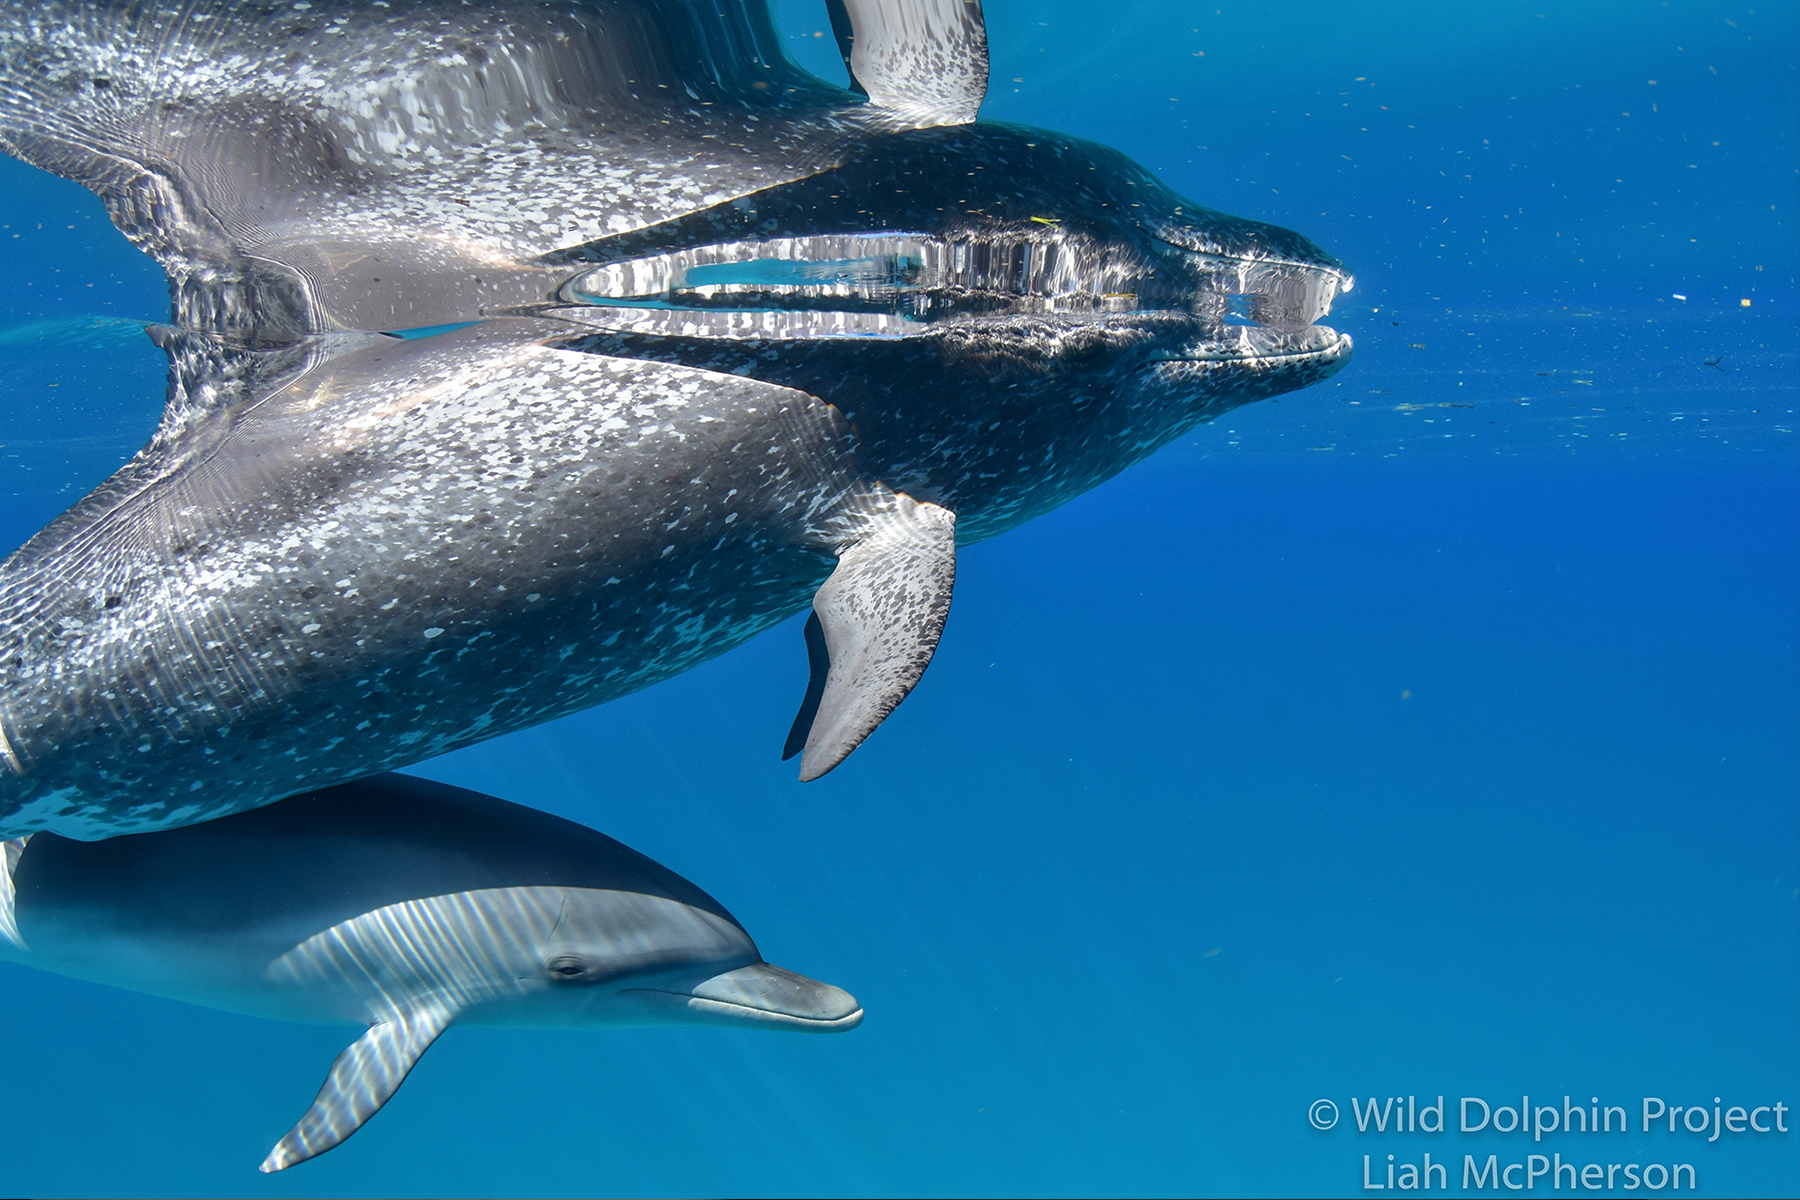 two dolphins, one spotted